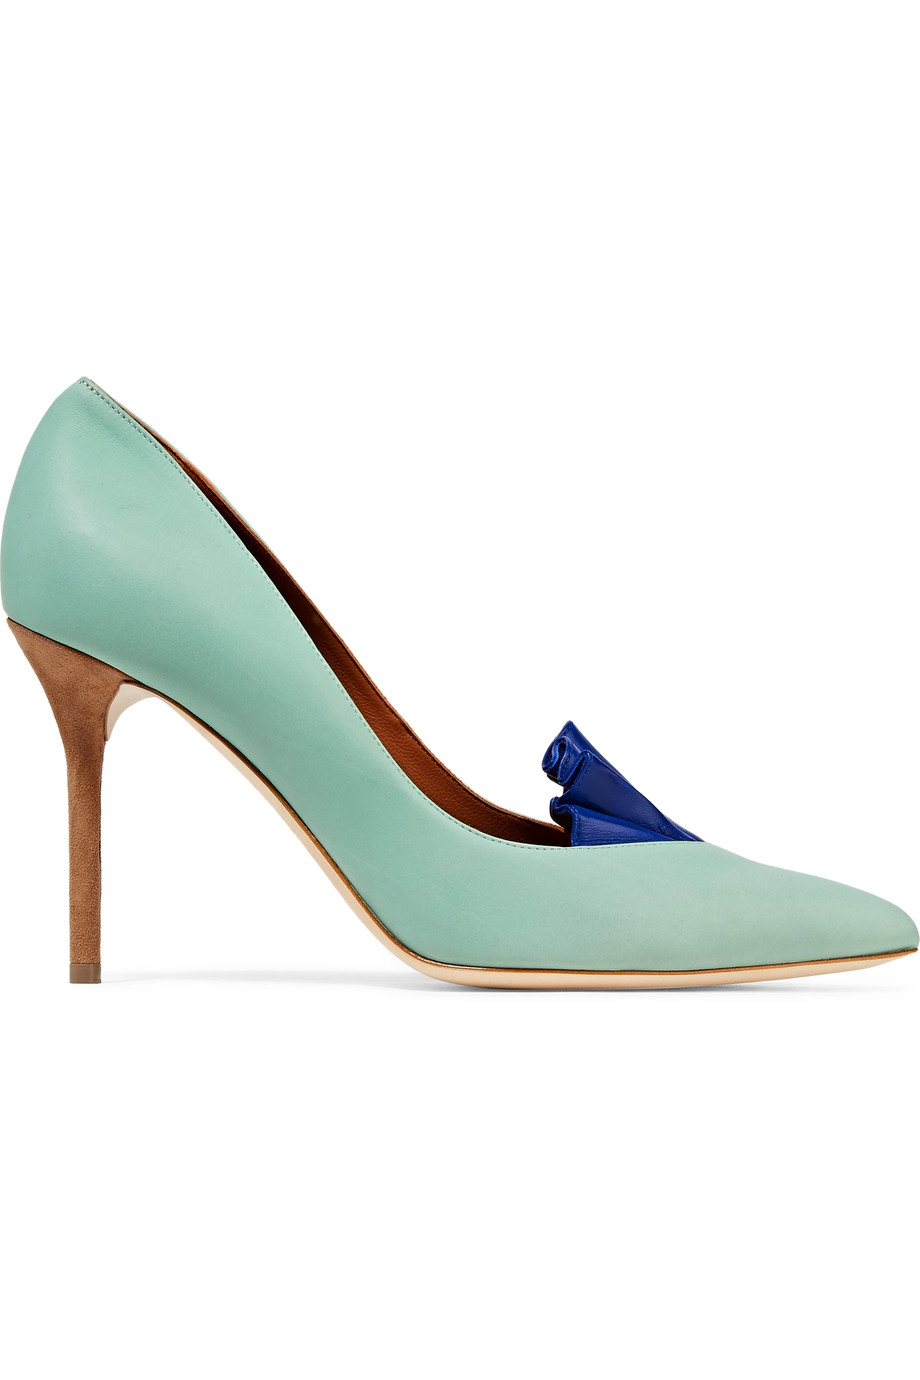 MALONE SOULIERS + Adam Lippes Brenda Ruffle-Trimmed Leather Pumps